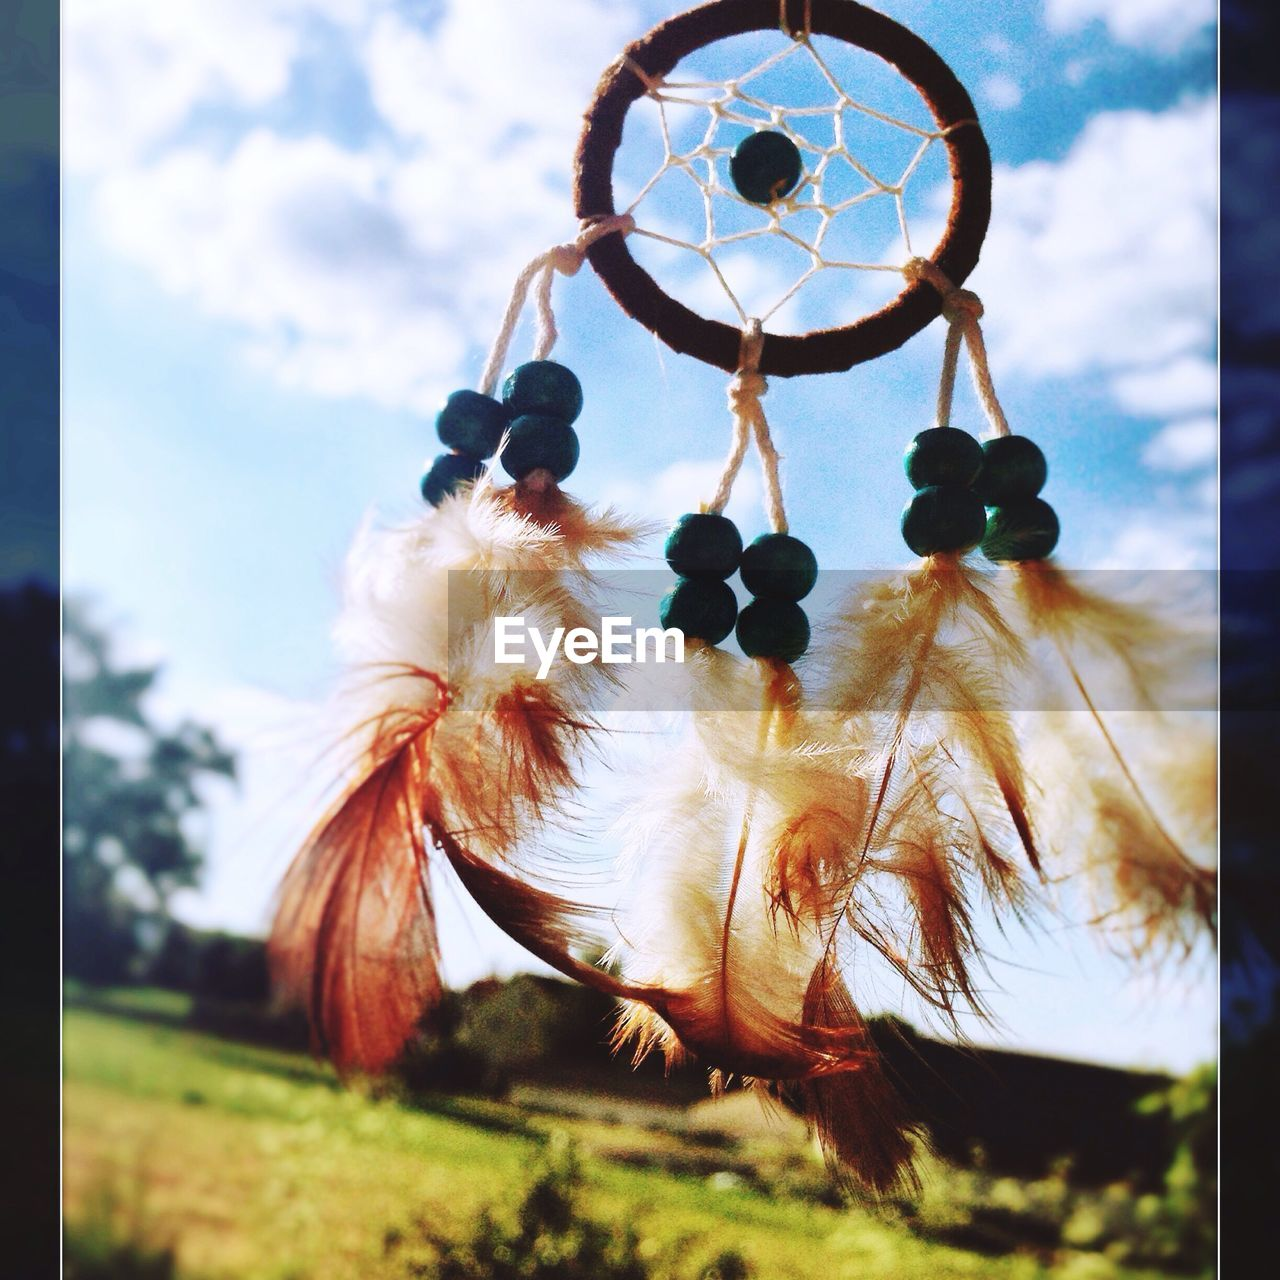 dreamcatcher, sky, hanging, close-up, no people, day, outdoors, feather, low angle view, nature, growth, tree, beauty in nature